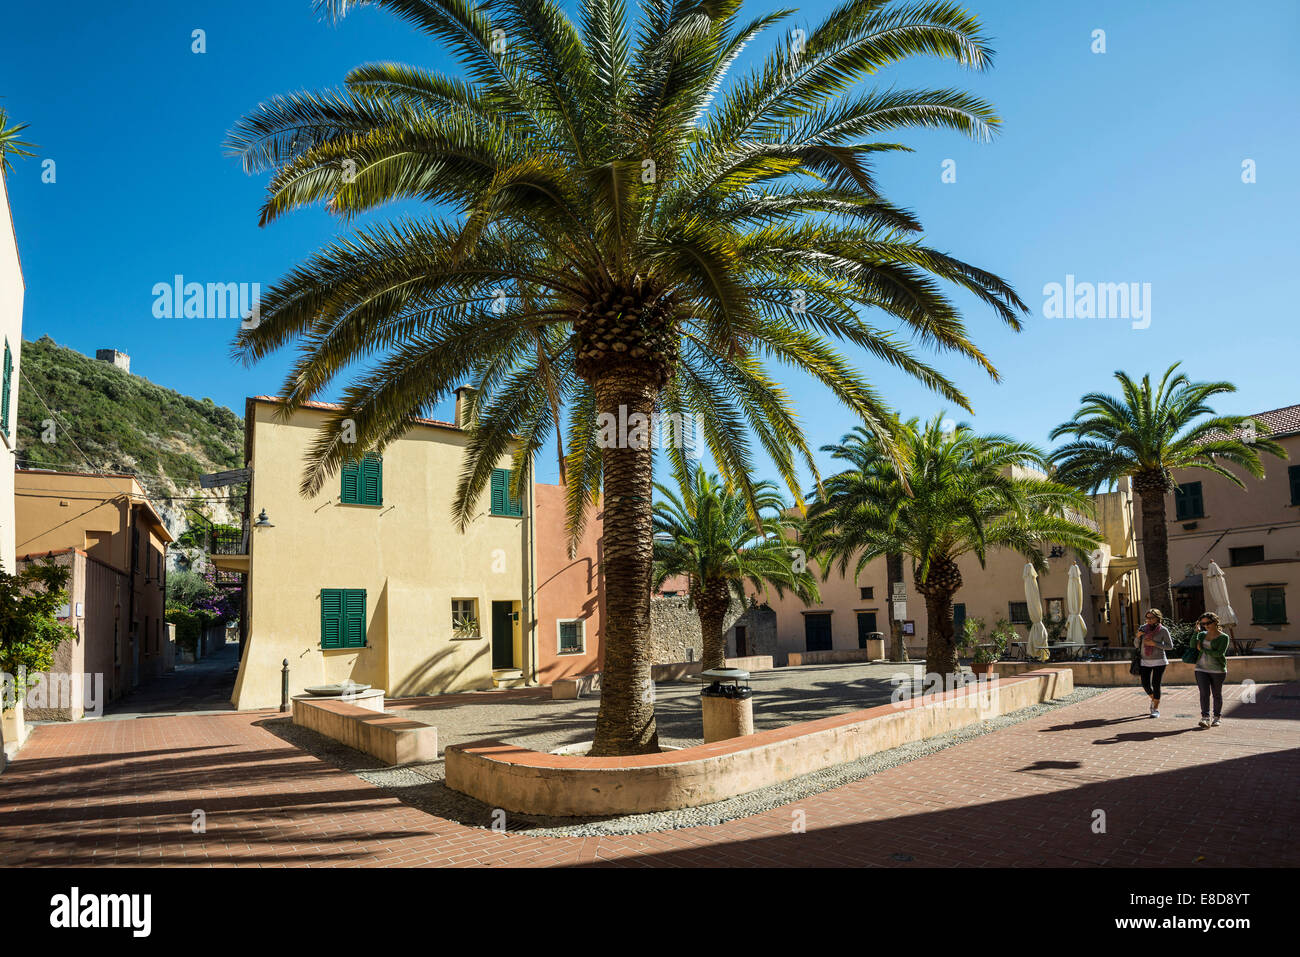 Square with palm trees, Varigotti, Finale Ligure, Liguria, Italy Stock Photo